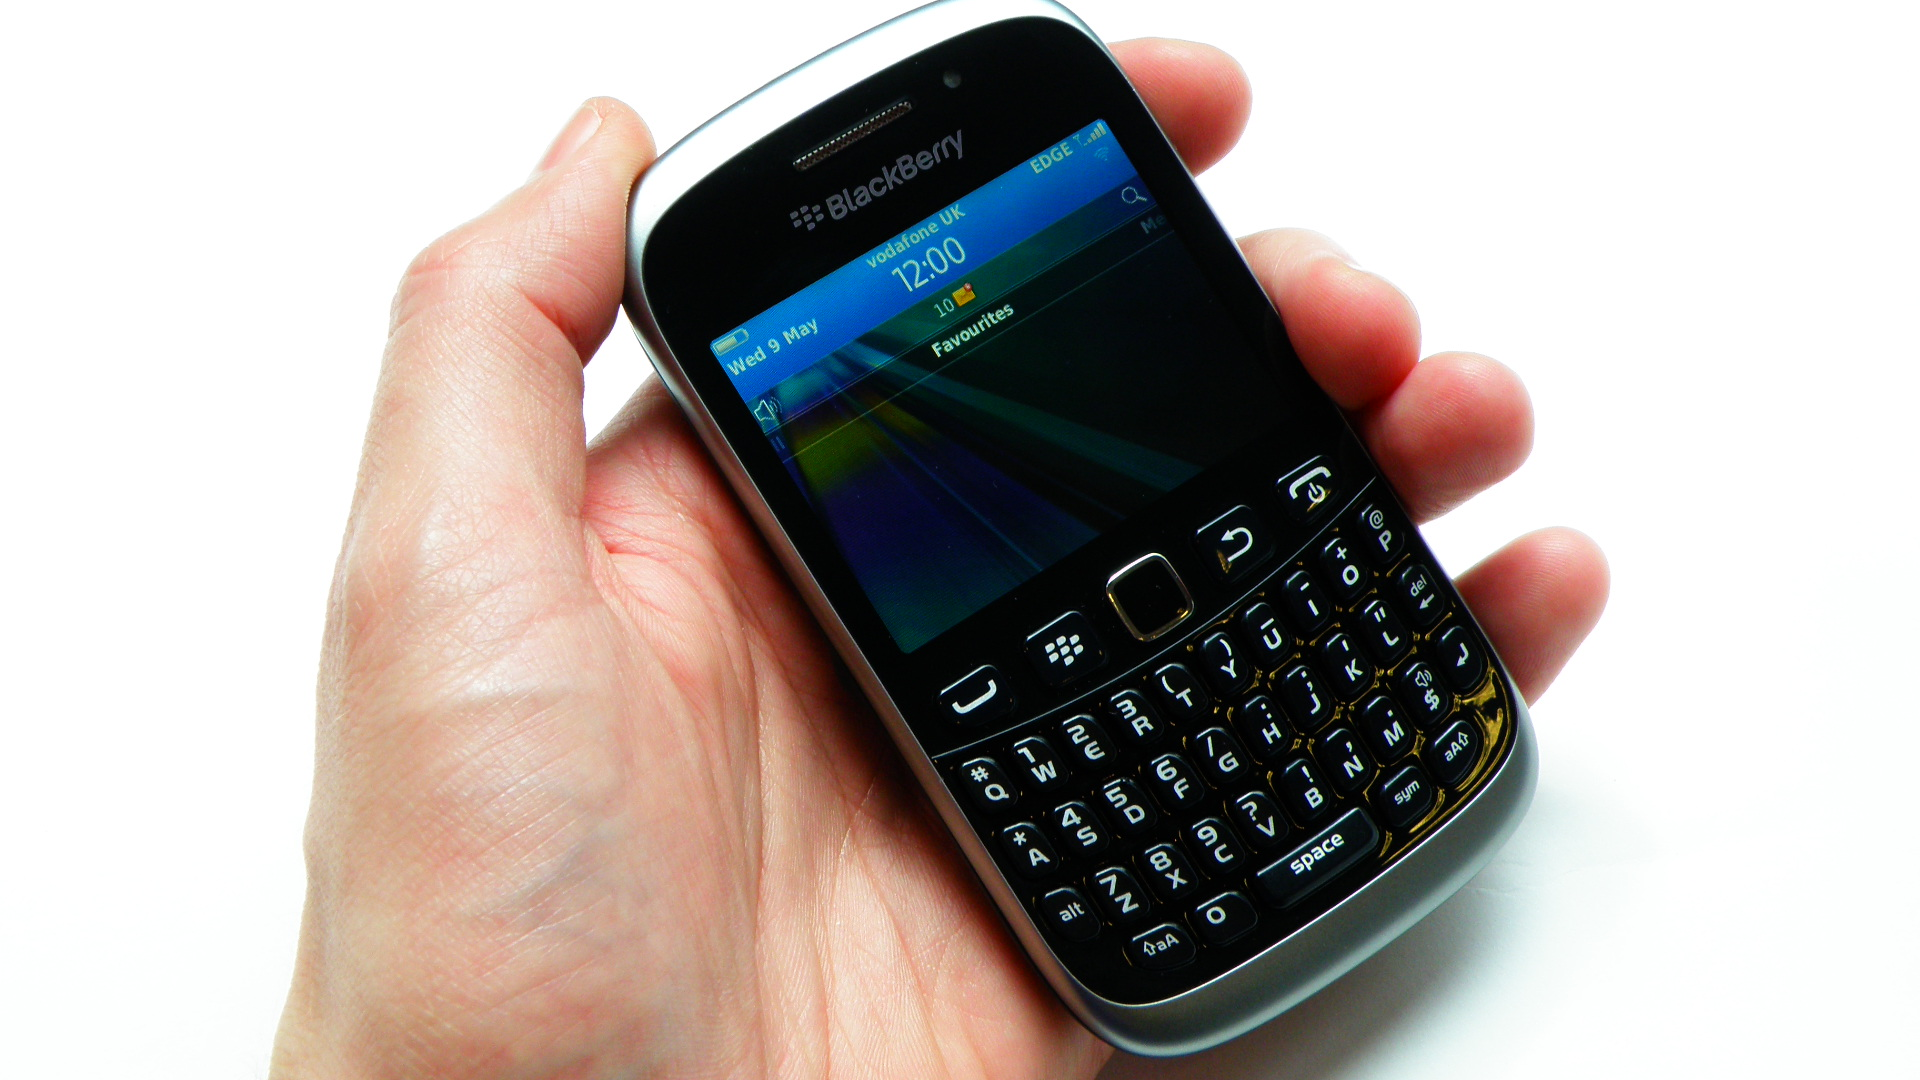 Hands-on review: BlackBerry Curve 9320